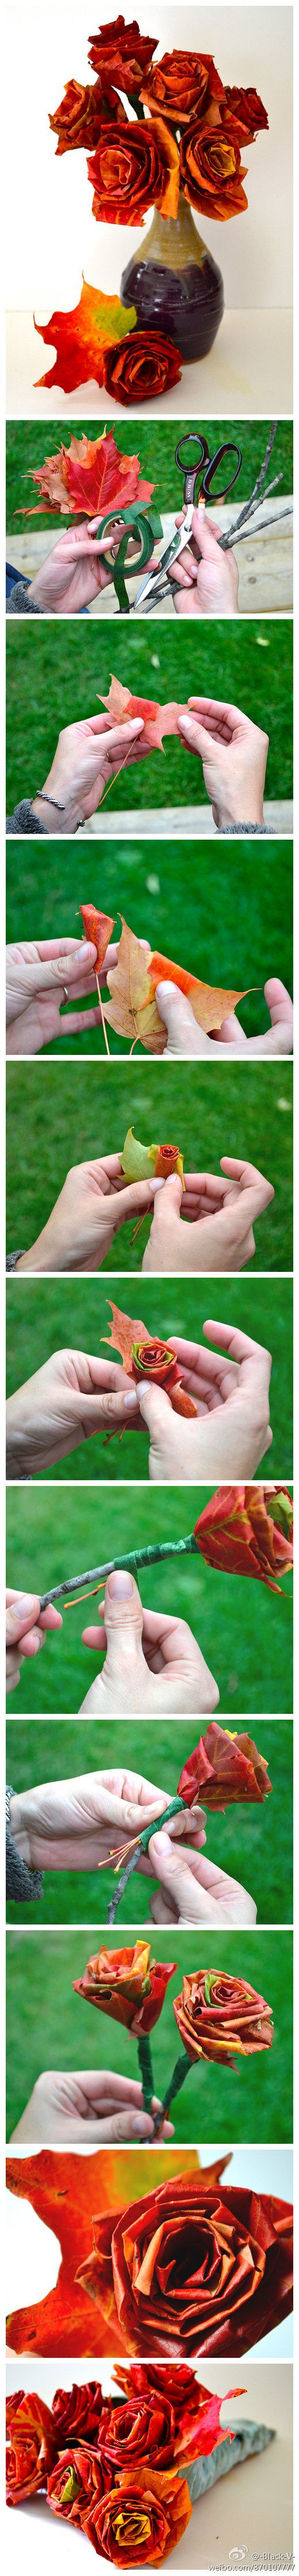 Make roses from fall leaves